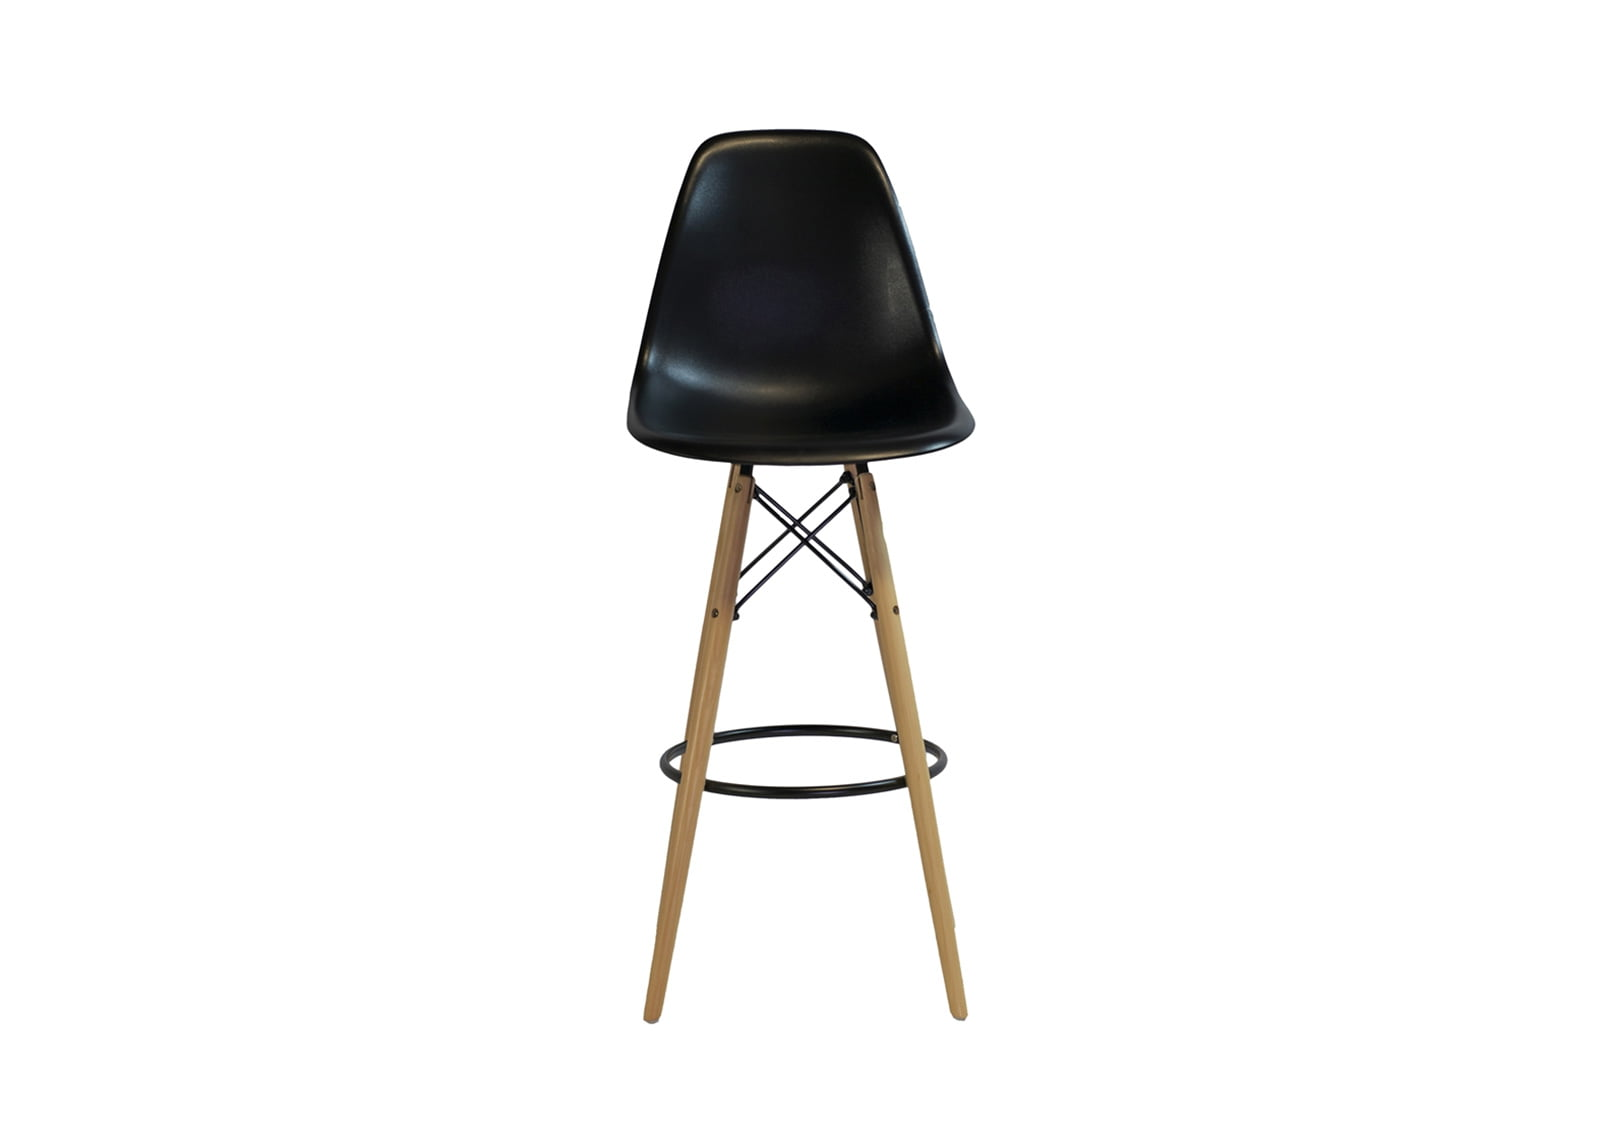 charles eames style dsw counter stool furnishplus. Black Bedroom Furniture Sets. Home Design Ideas